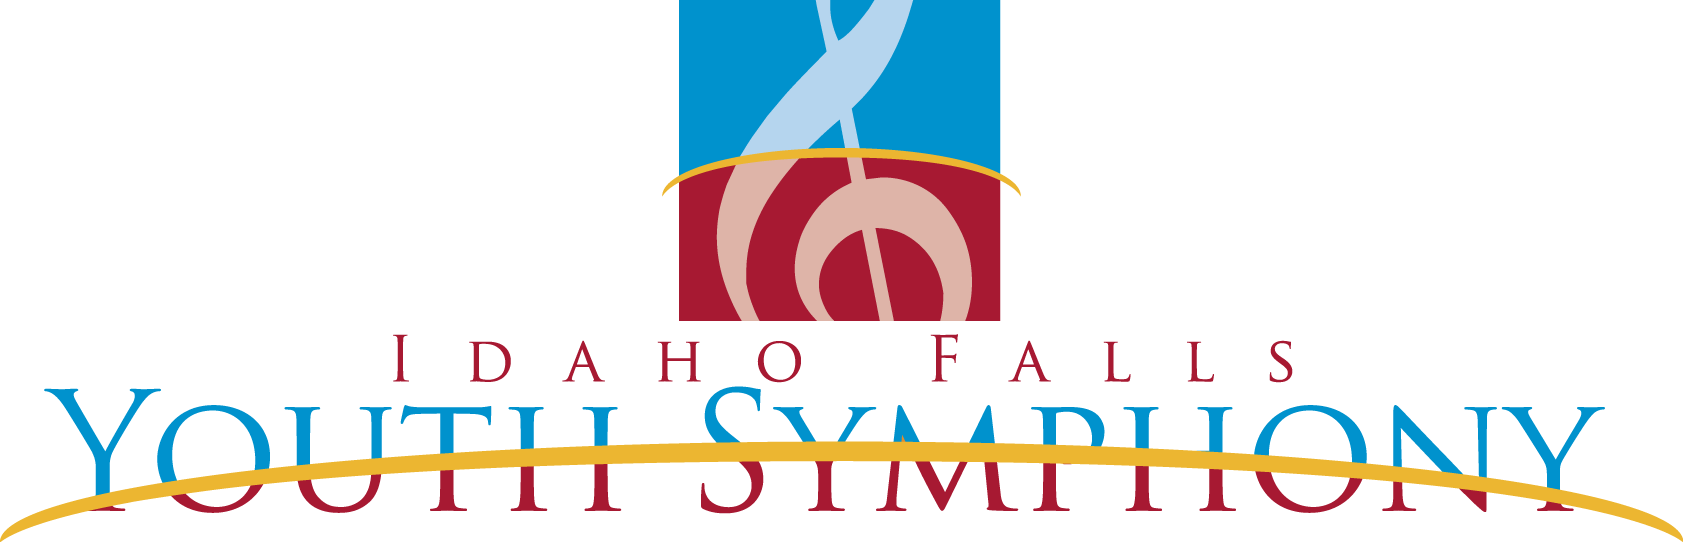 "Jest"" wins the Idaho Falls Youth Symphony 25th Season Composition"